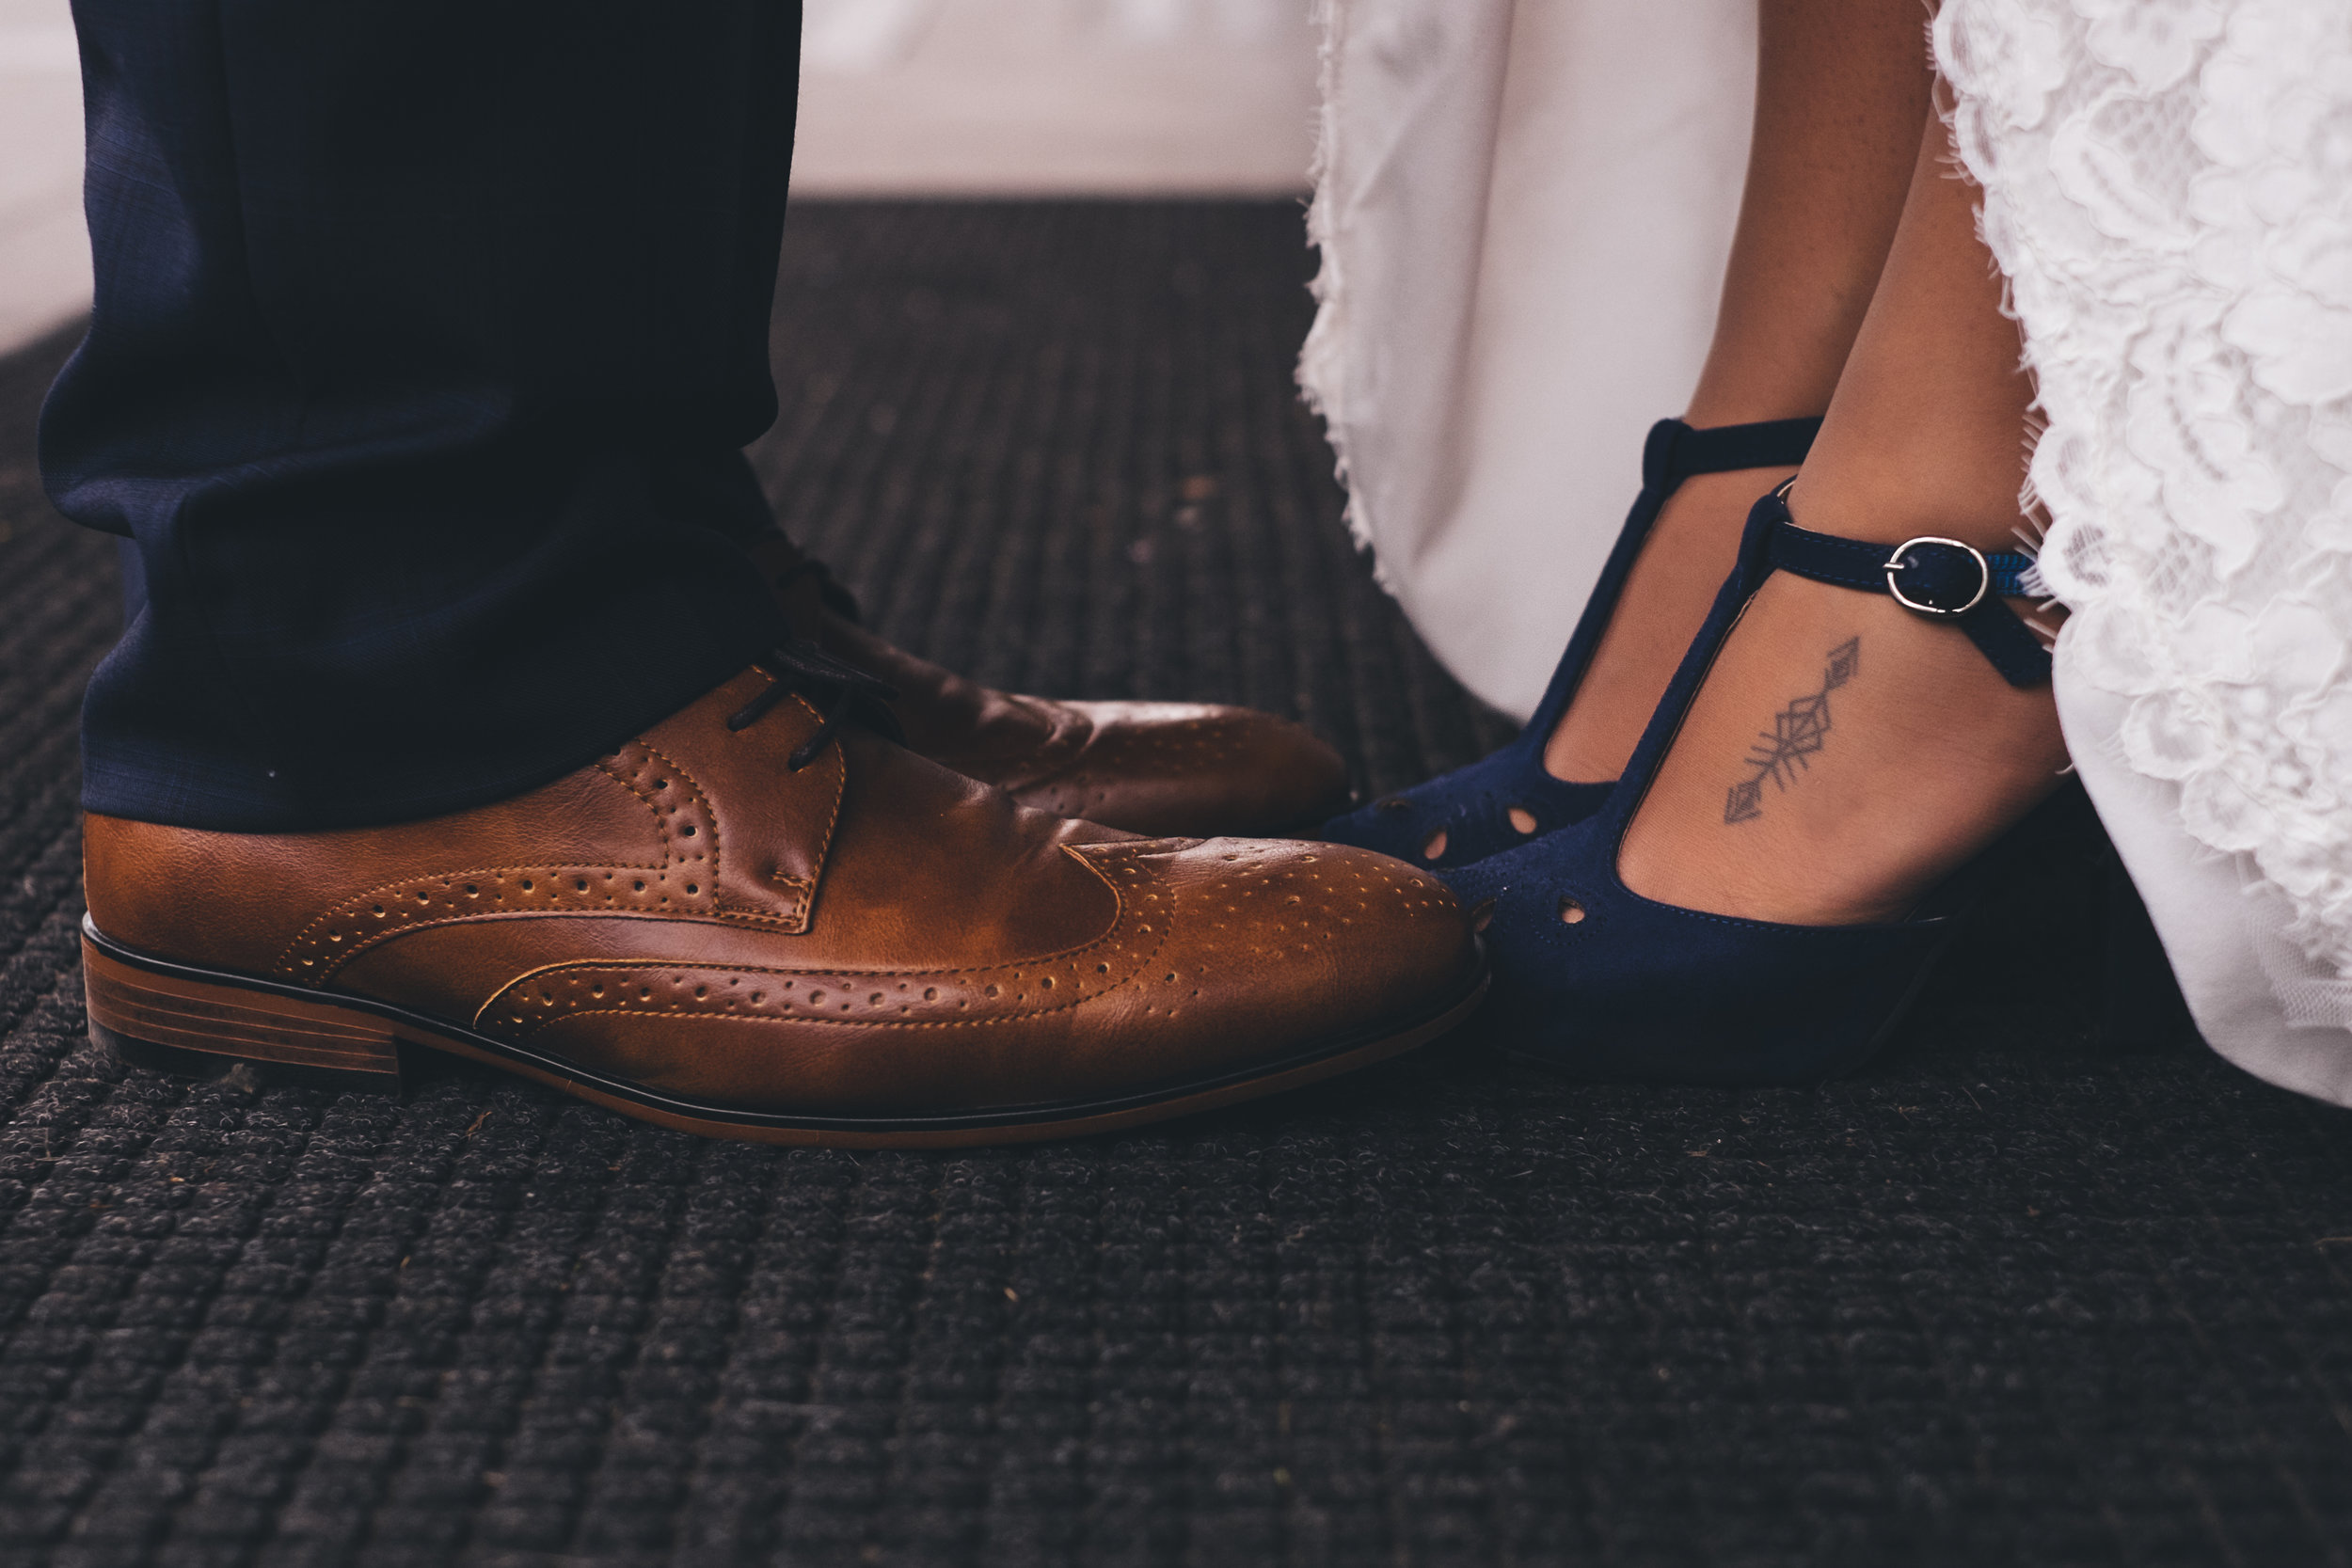 Portland, OR City Hall Elopement Courthouse Wedding-39.jpg